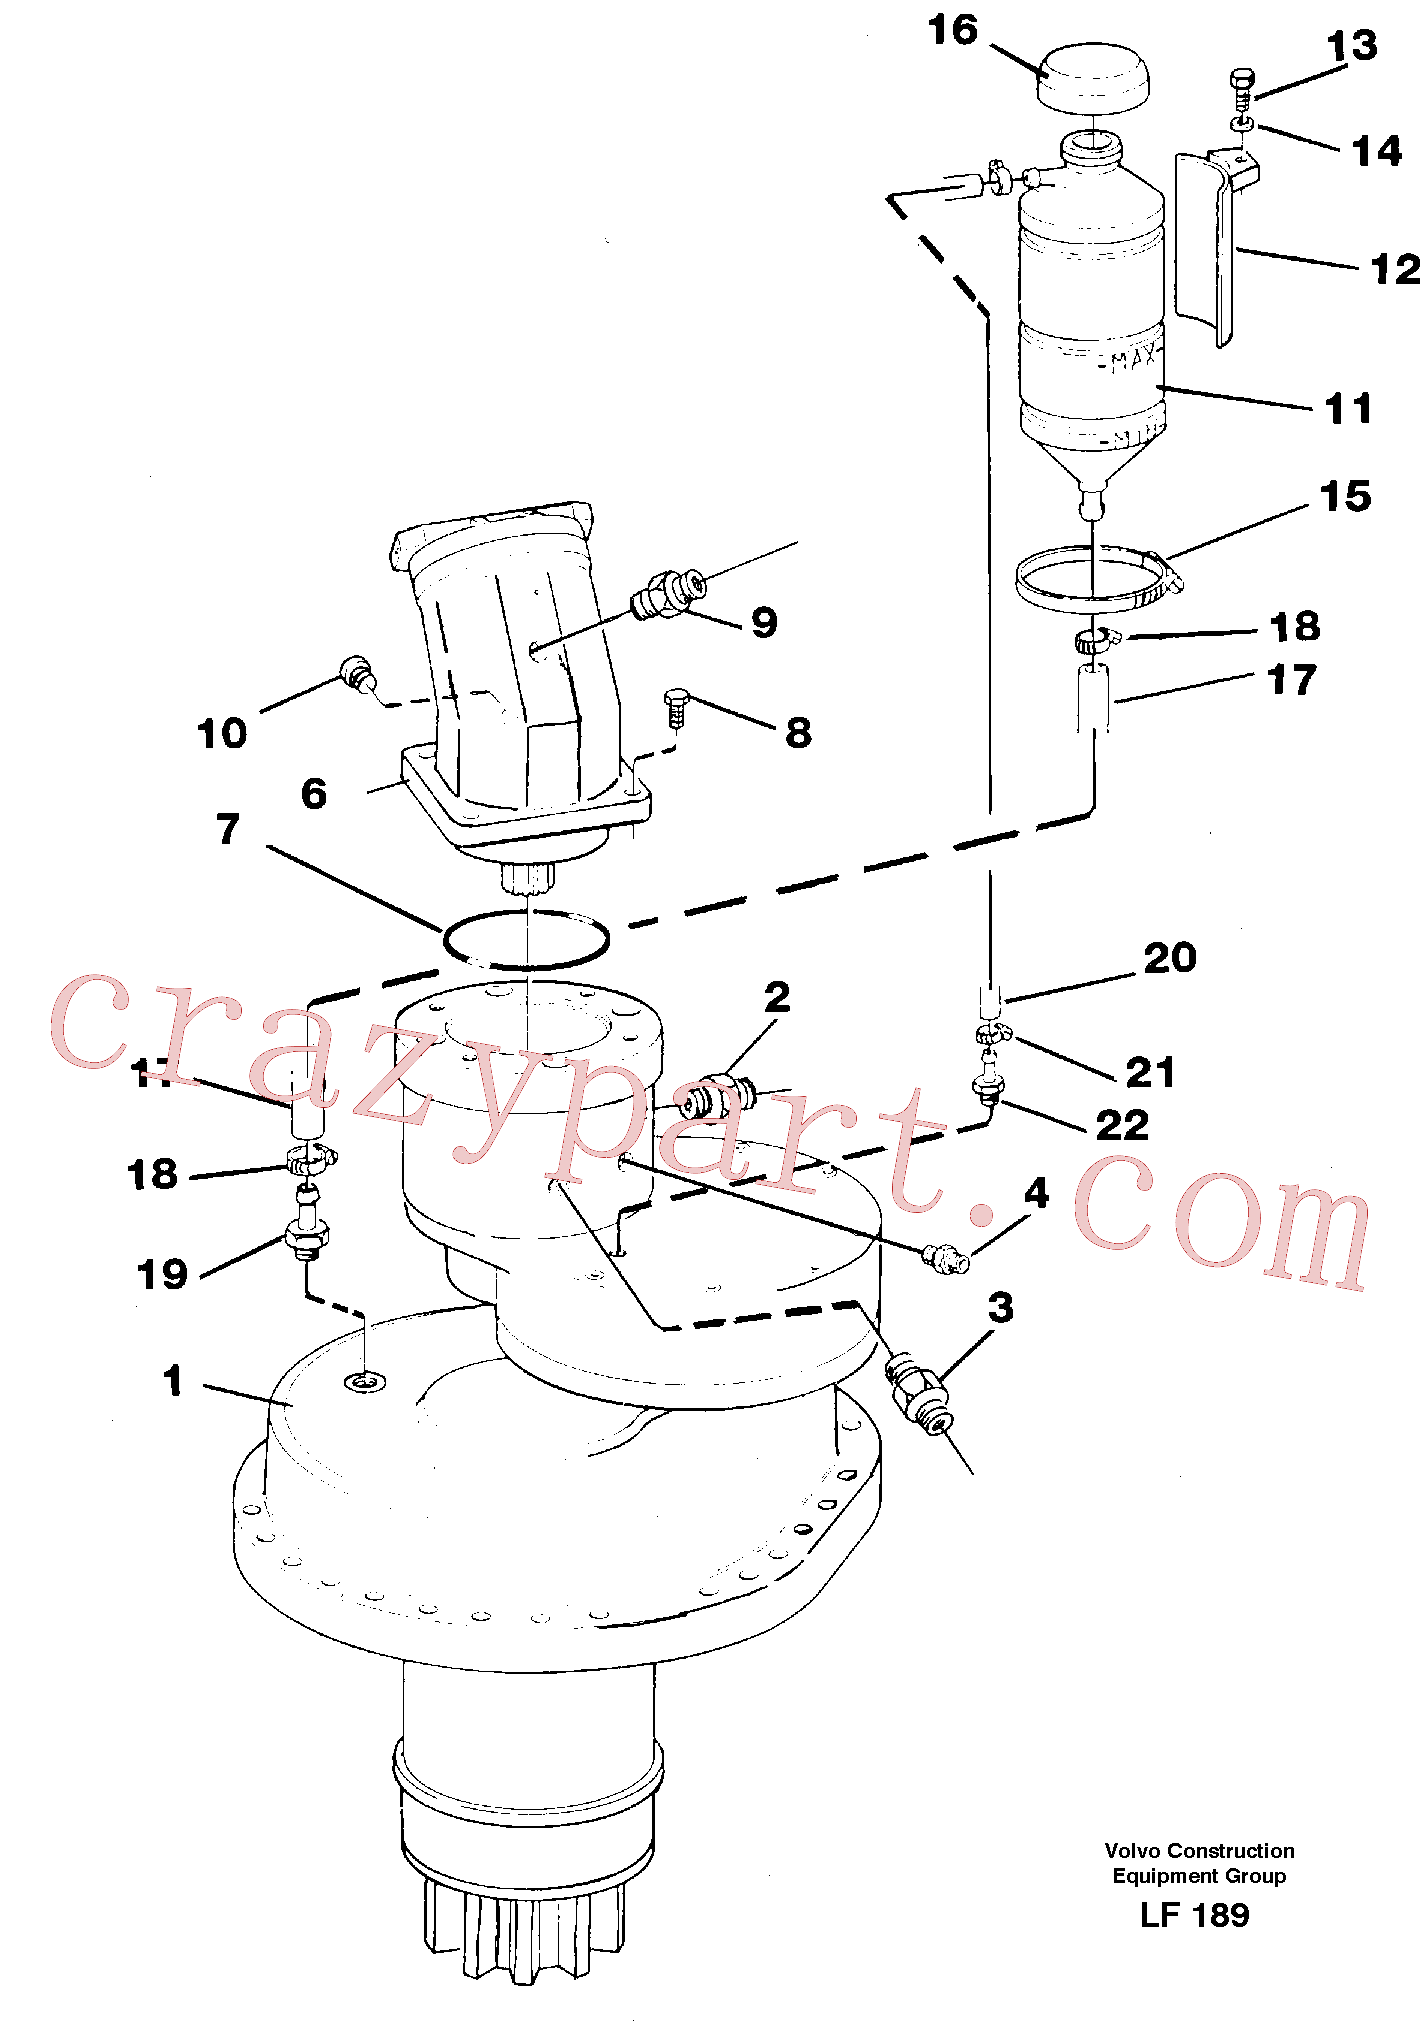 VOE14012414 for Volvo Slewing gear box, compl.(LF189 assembly)